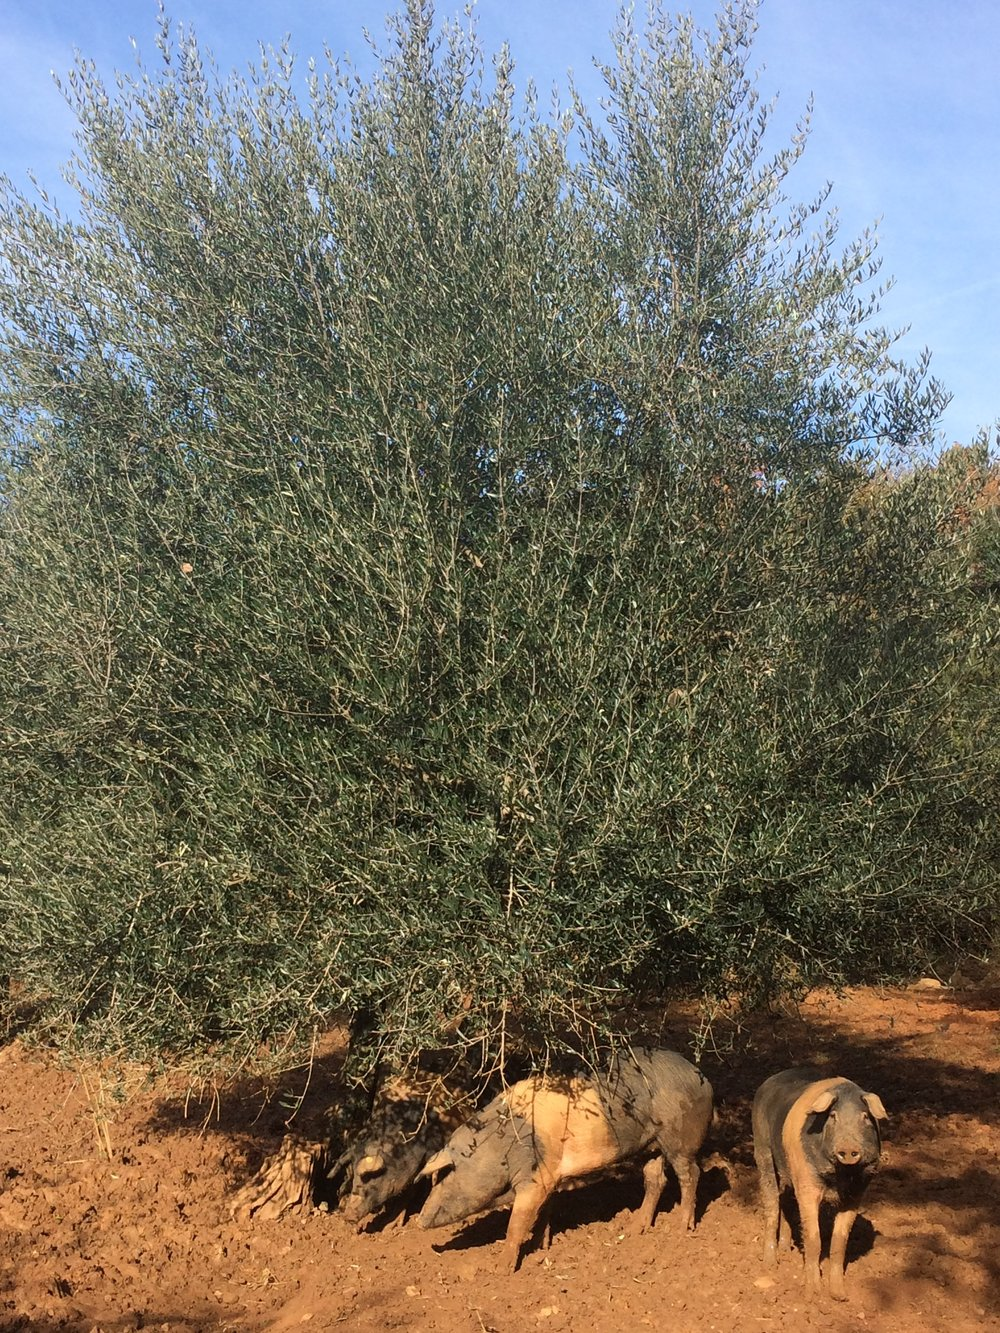 Cinta Senese hogs under an olive tree at Spannocchia, fall 2016.